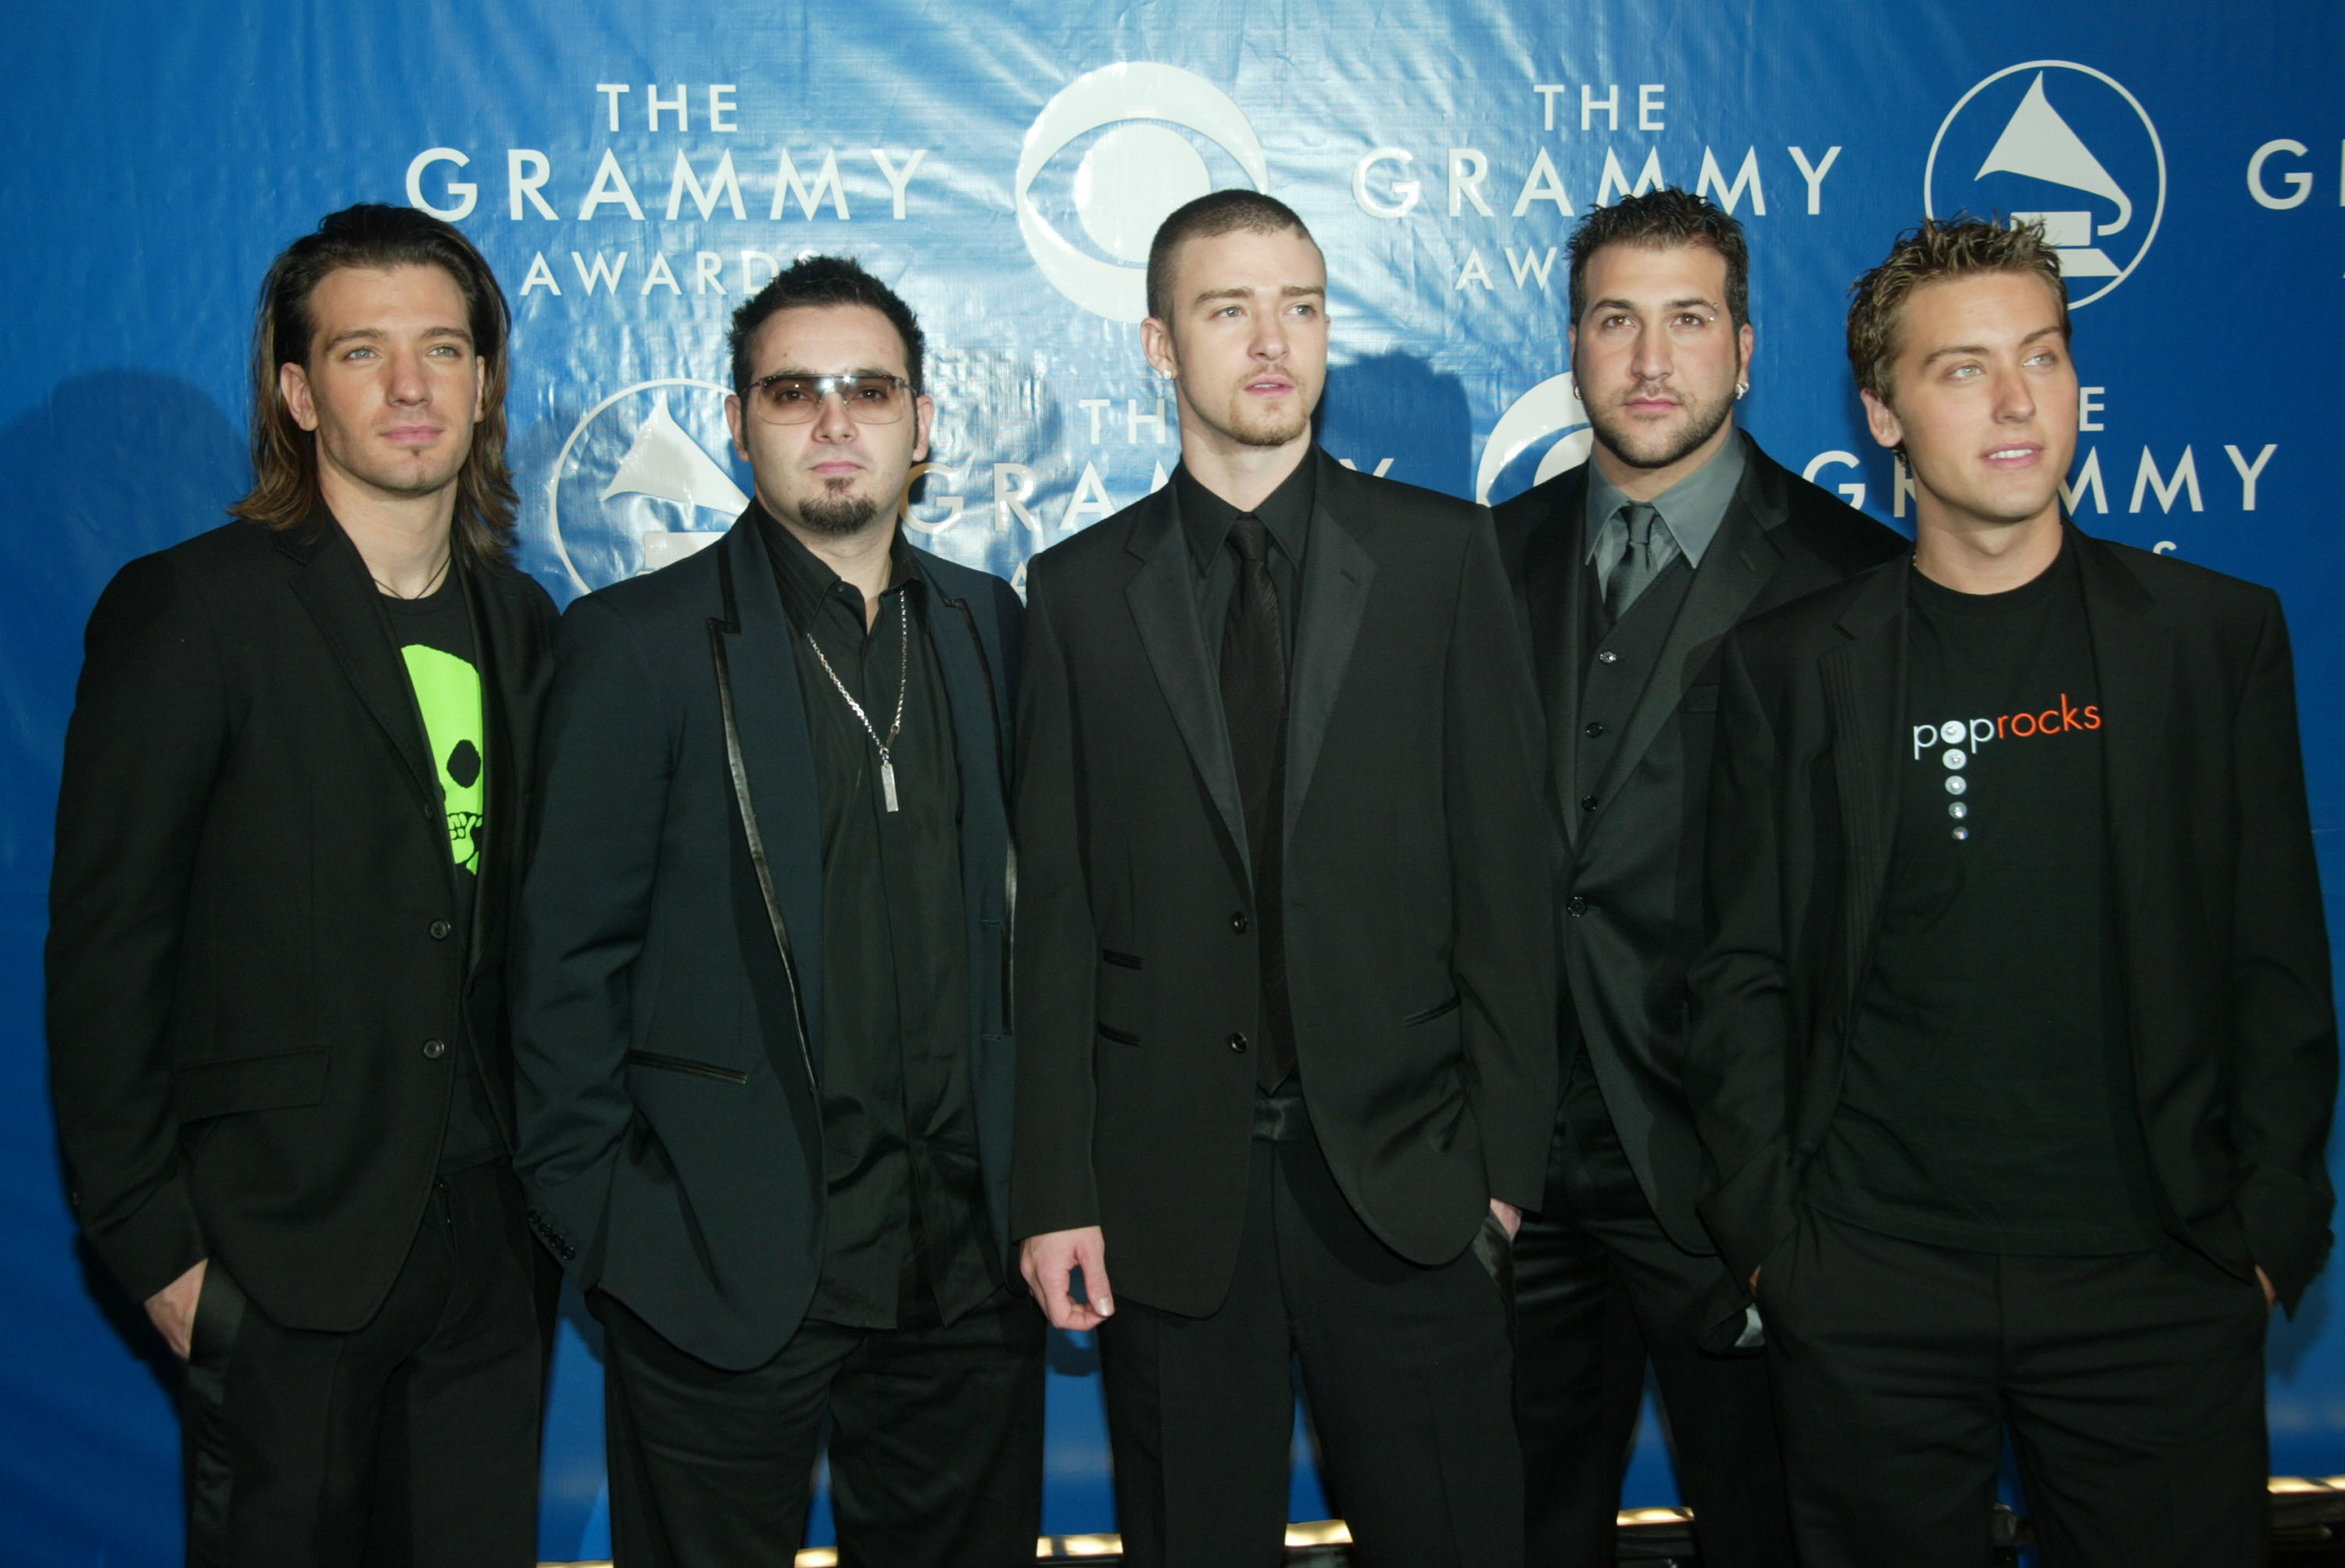 NEW YORK - FEBRUARY 23:  'N SYNC attends the 45th Annual Grammy Awards at Madison Square Garden on February 23, 2003 in New York City.  (Photo by Evan Agostini/Getty Images)